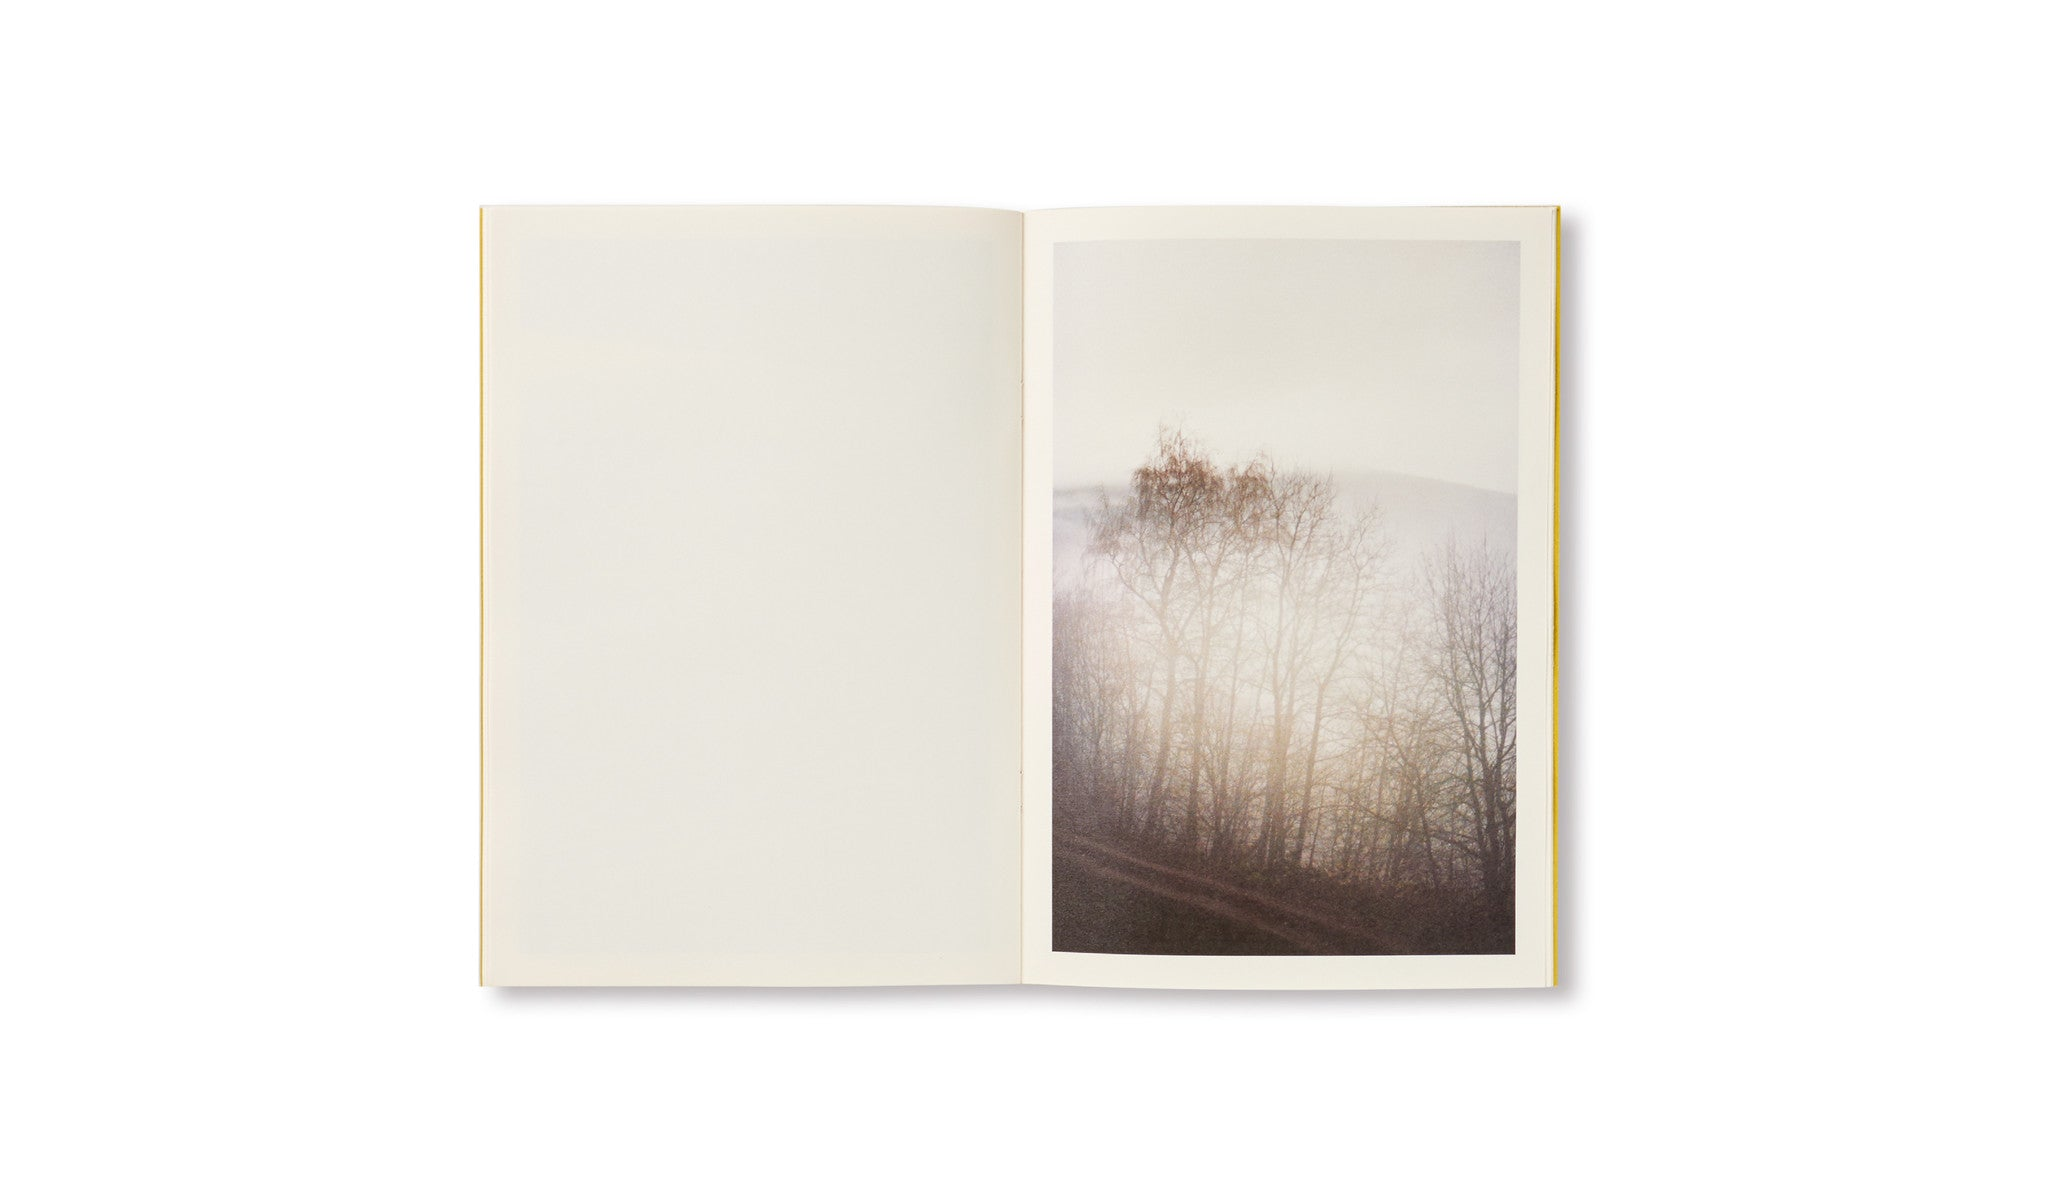 DISTANCE (PICTURES FOR AN UNTOLD STORY) by Ola Rindal [SPECIAL EDITION - A / SIGNED]